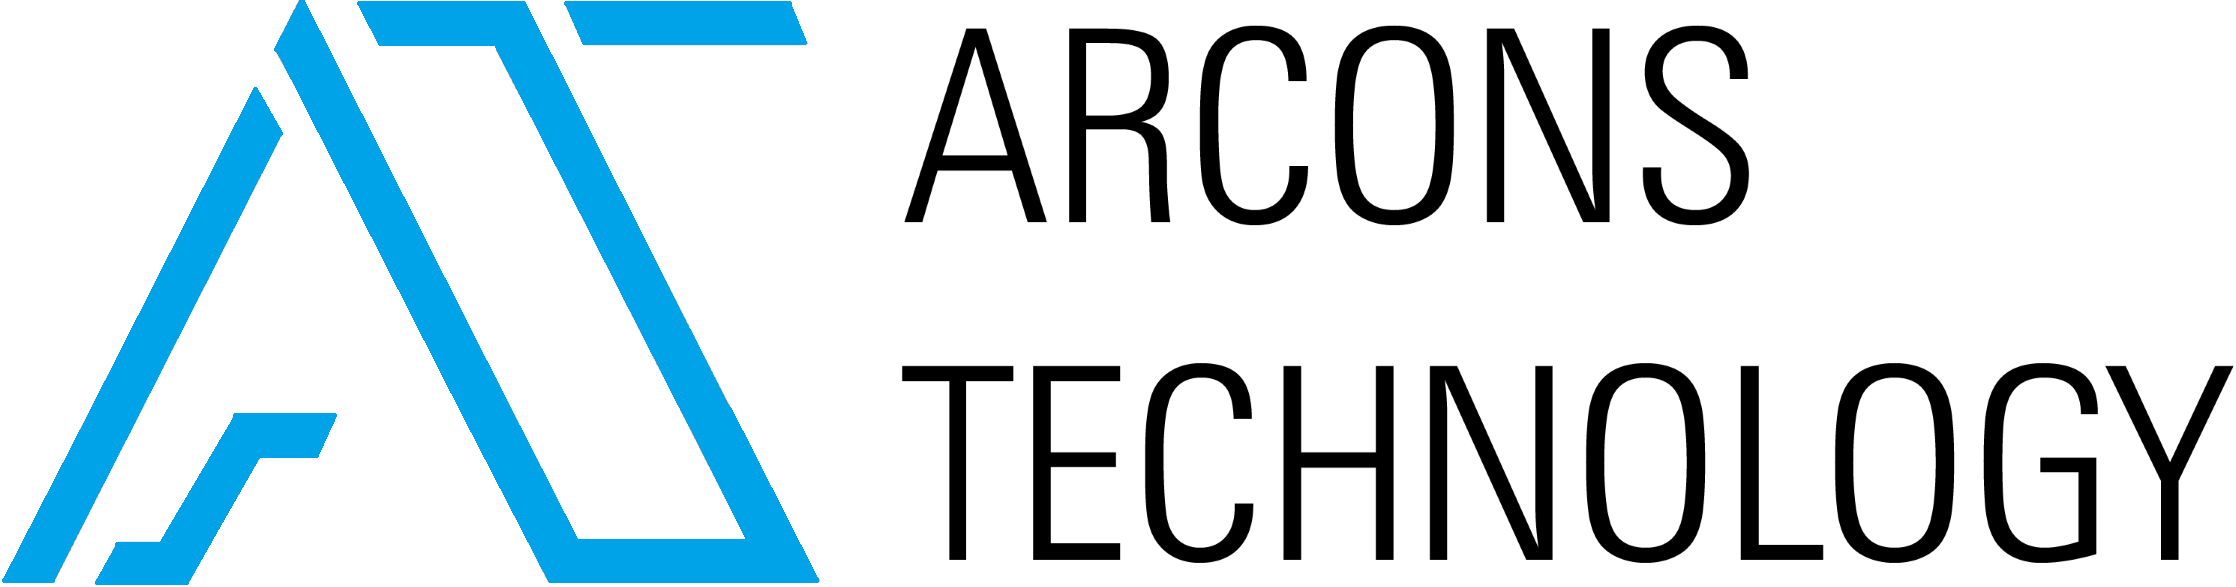 Arcons Technology